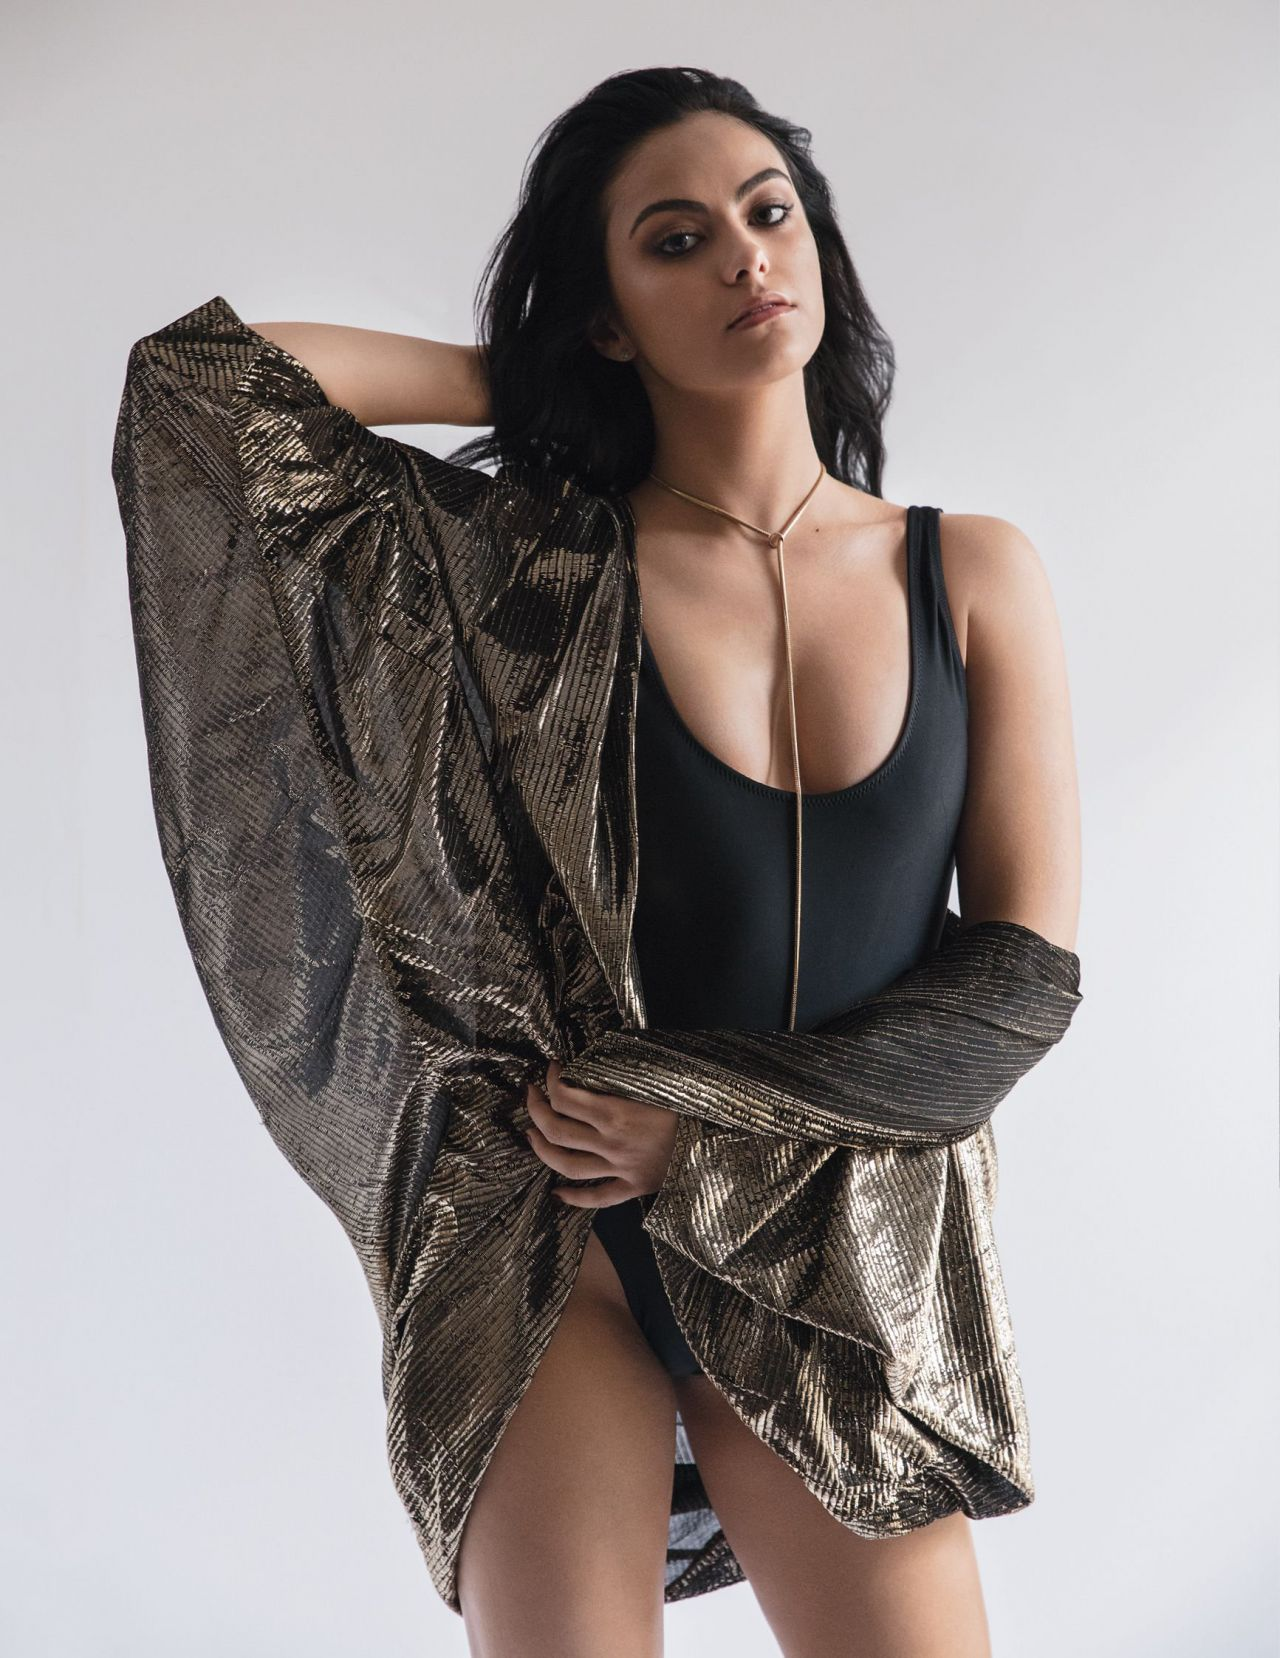 Camila Mendes Hi Res Photos Da Man Magazine 2017 Photos